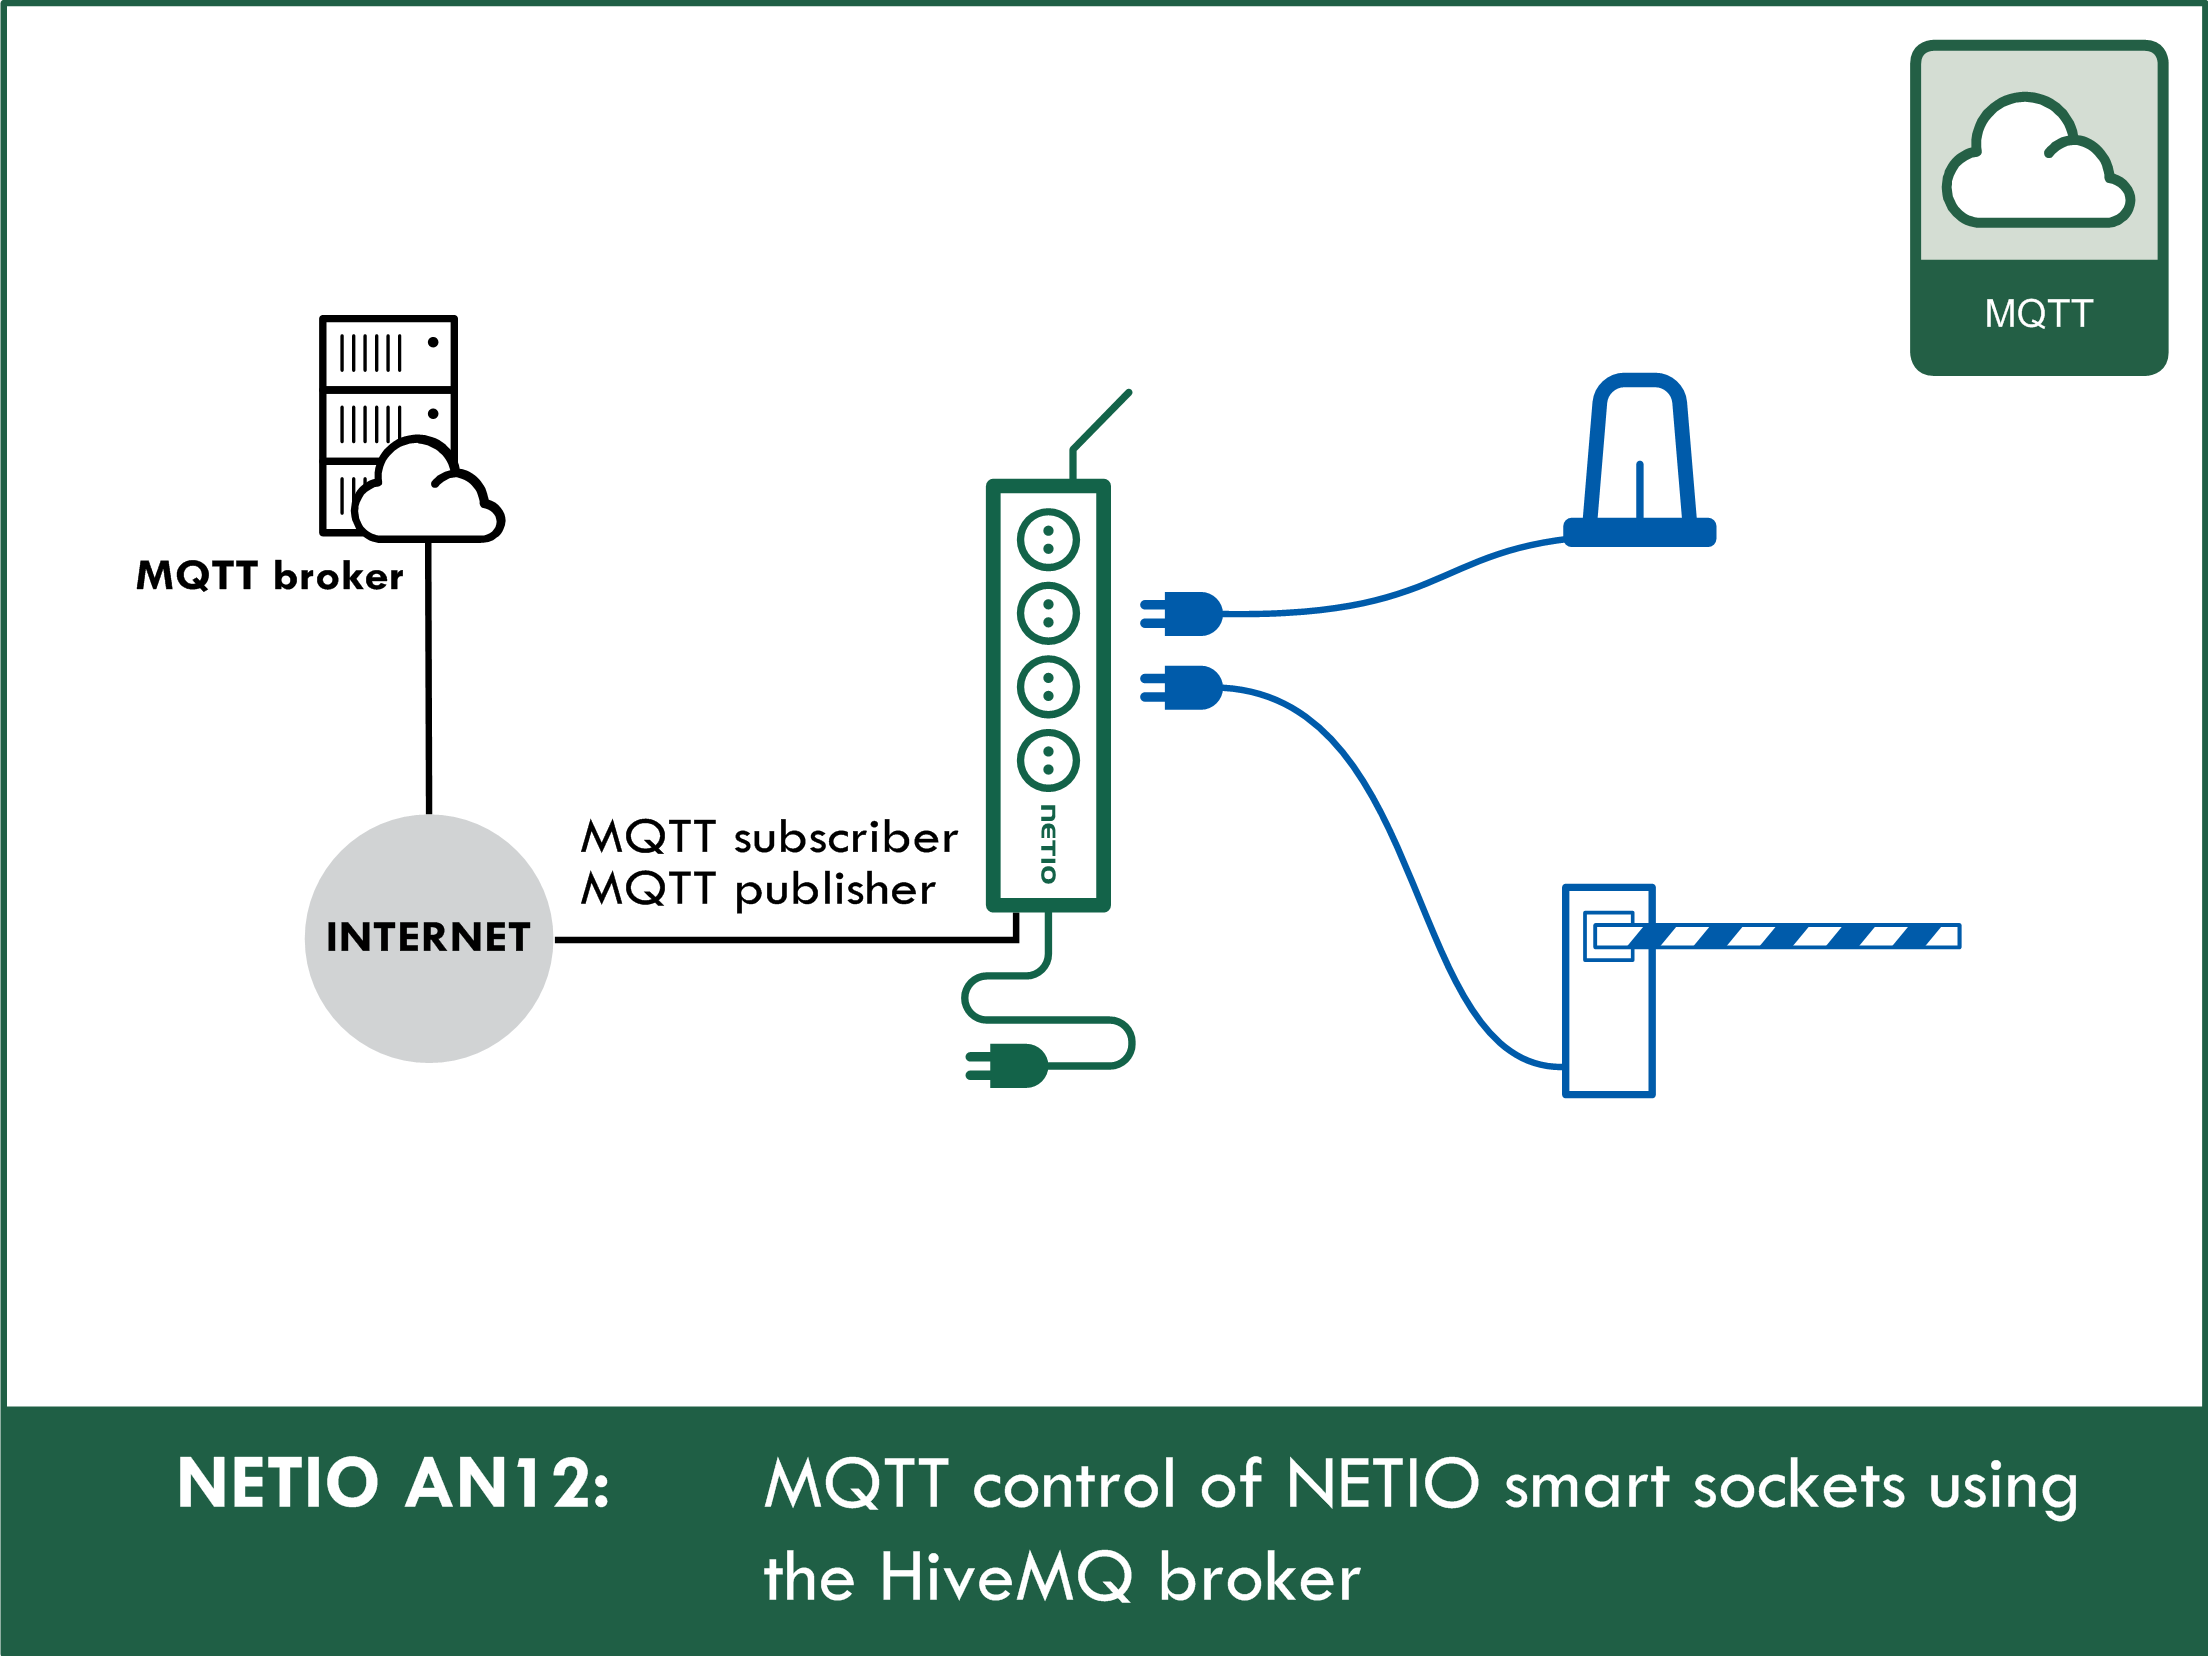 AN12 MQTT control of NETIO smart sockets using the HiveMQ broker